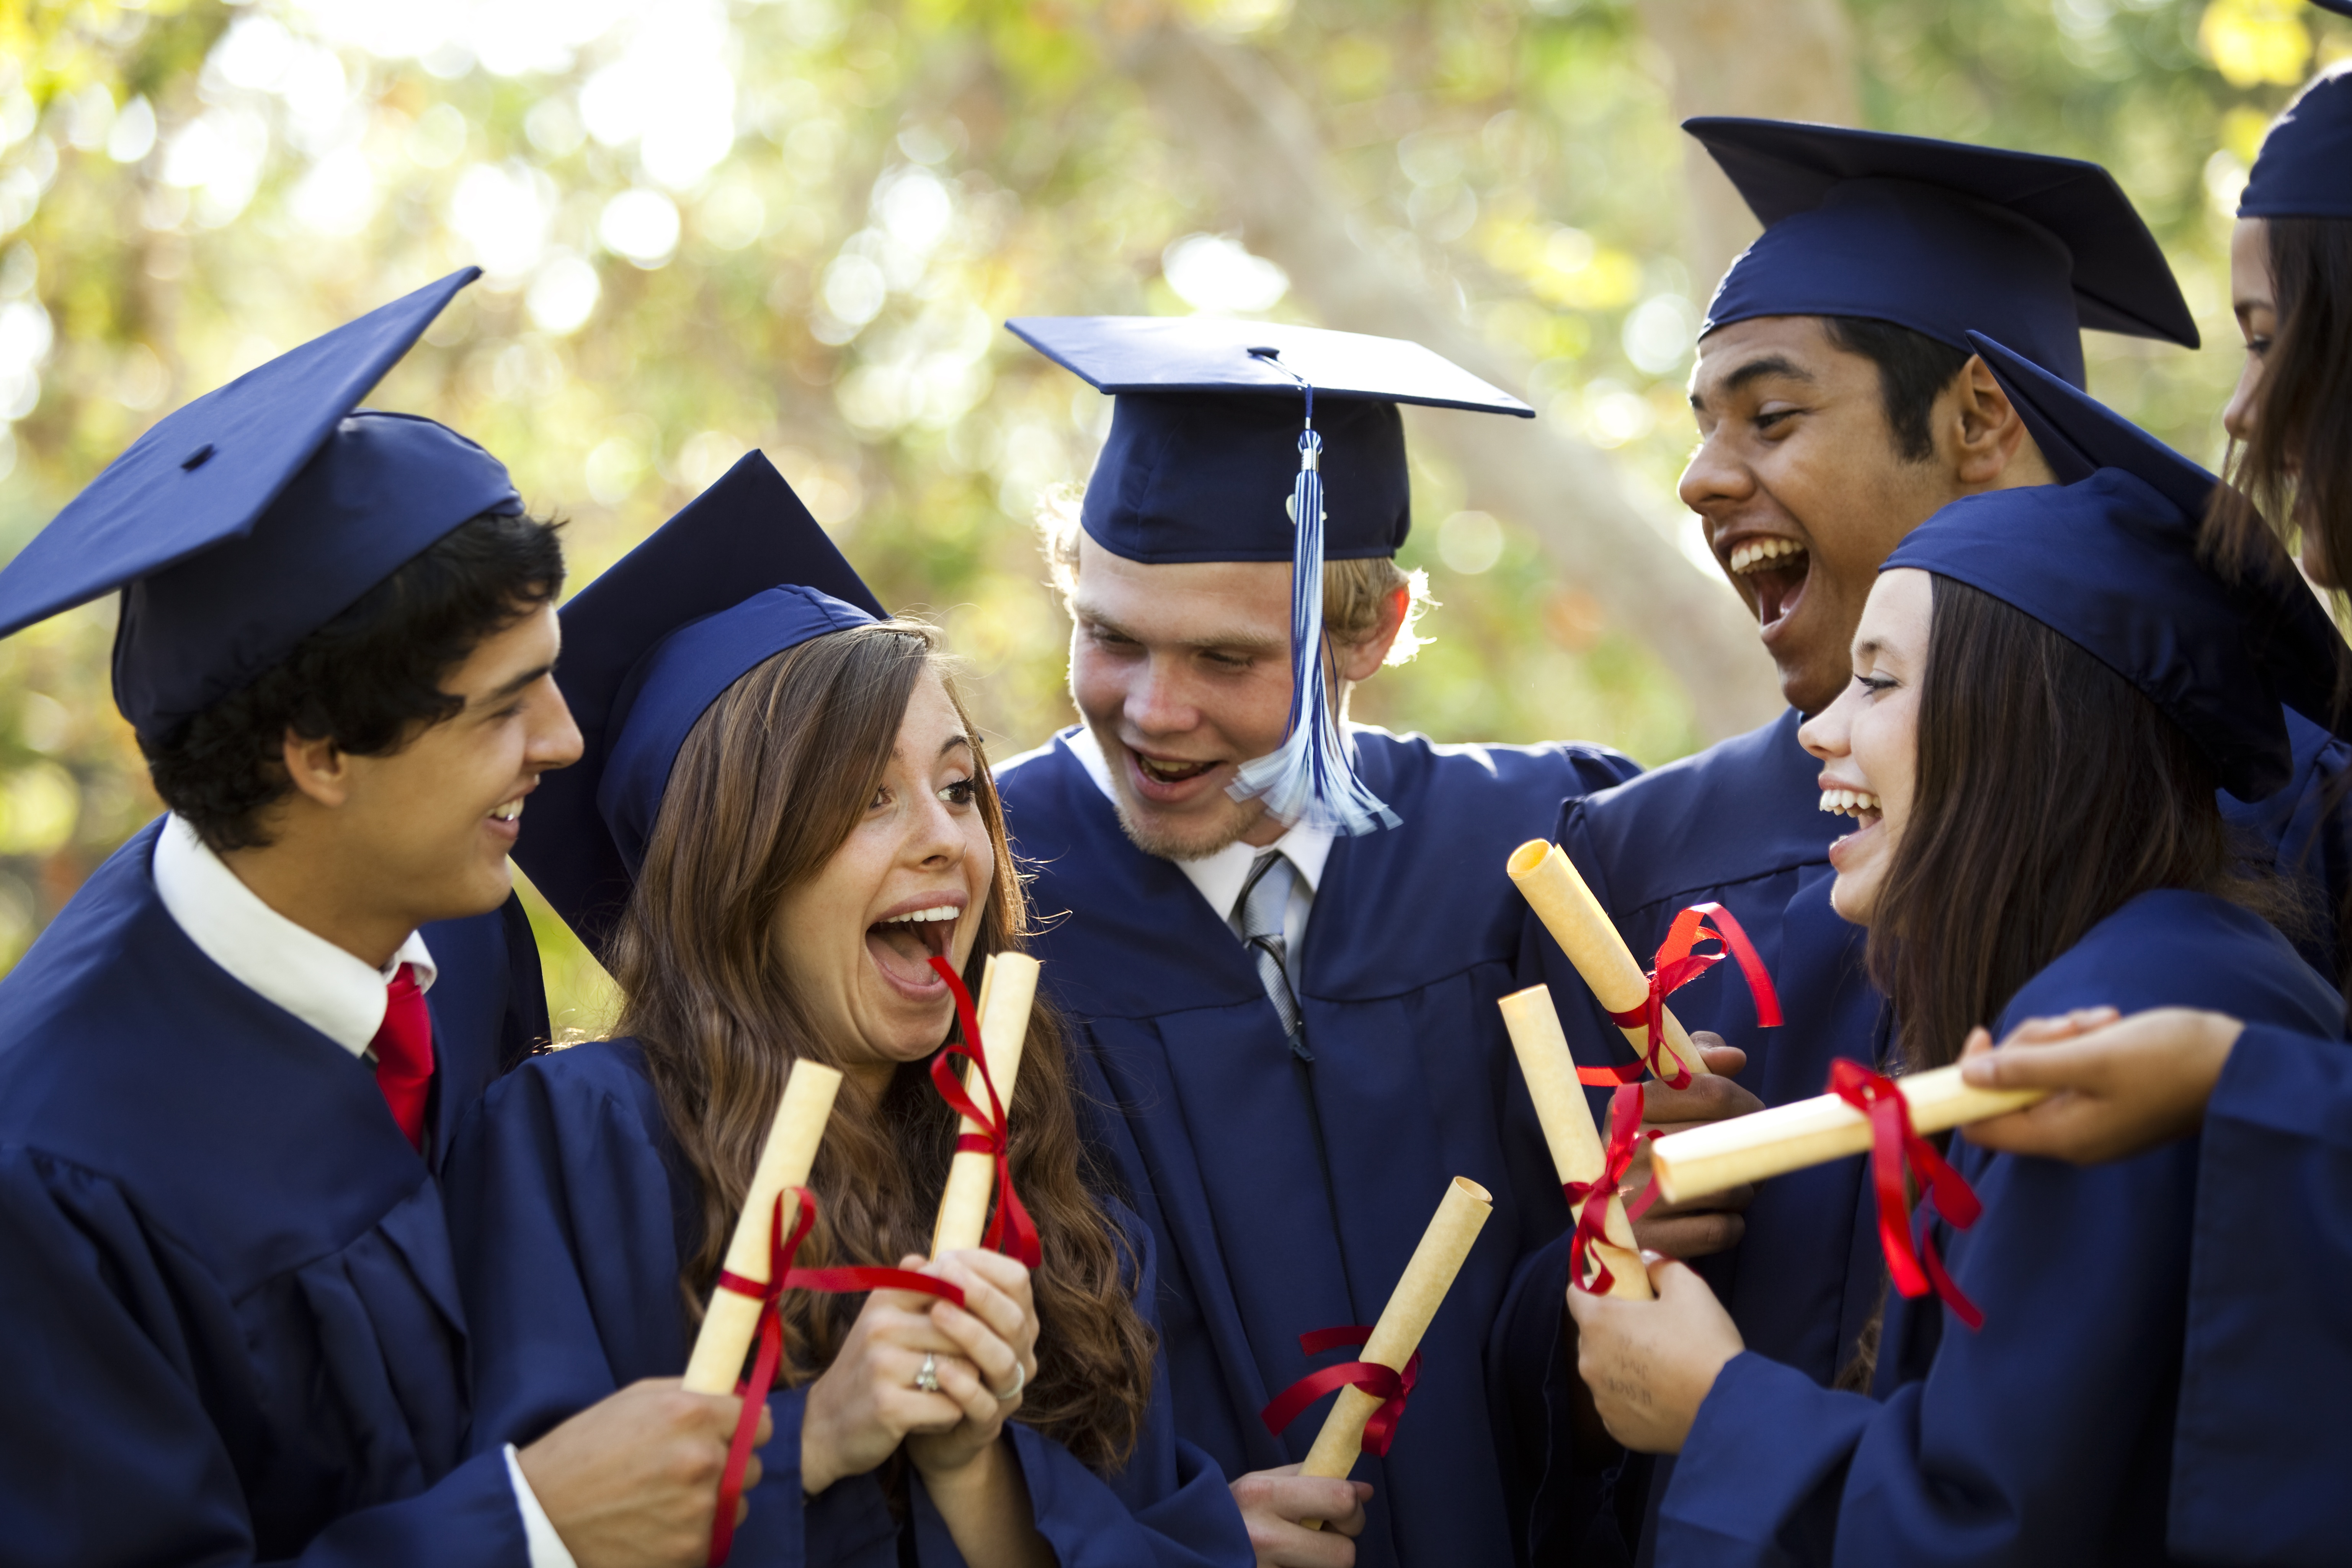 5 Reasons to Get Your High School Equivalency & How to Do It